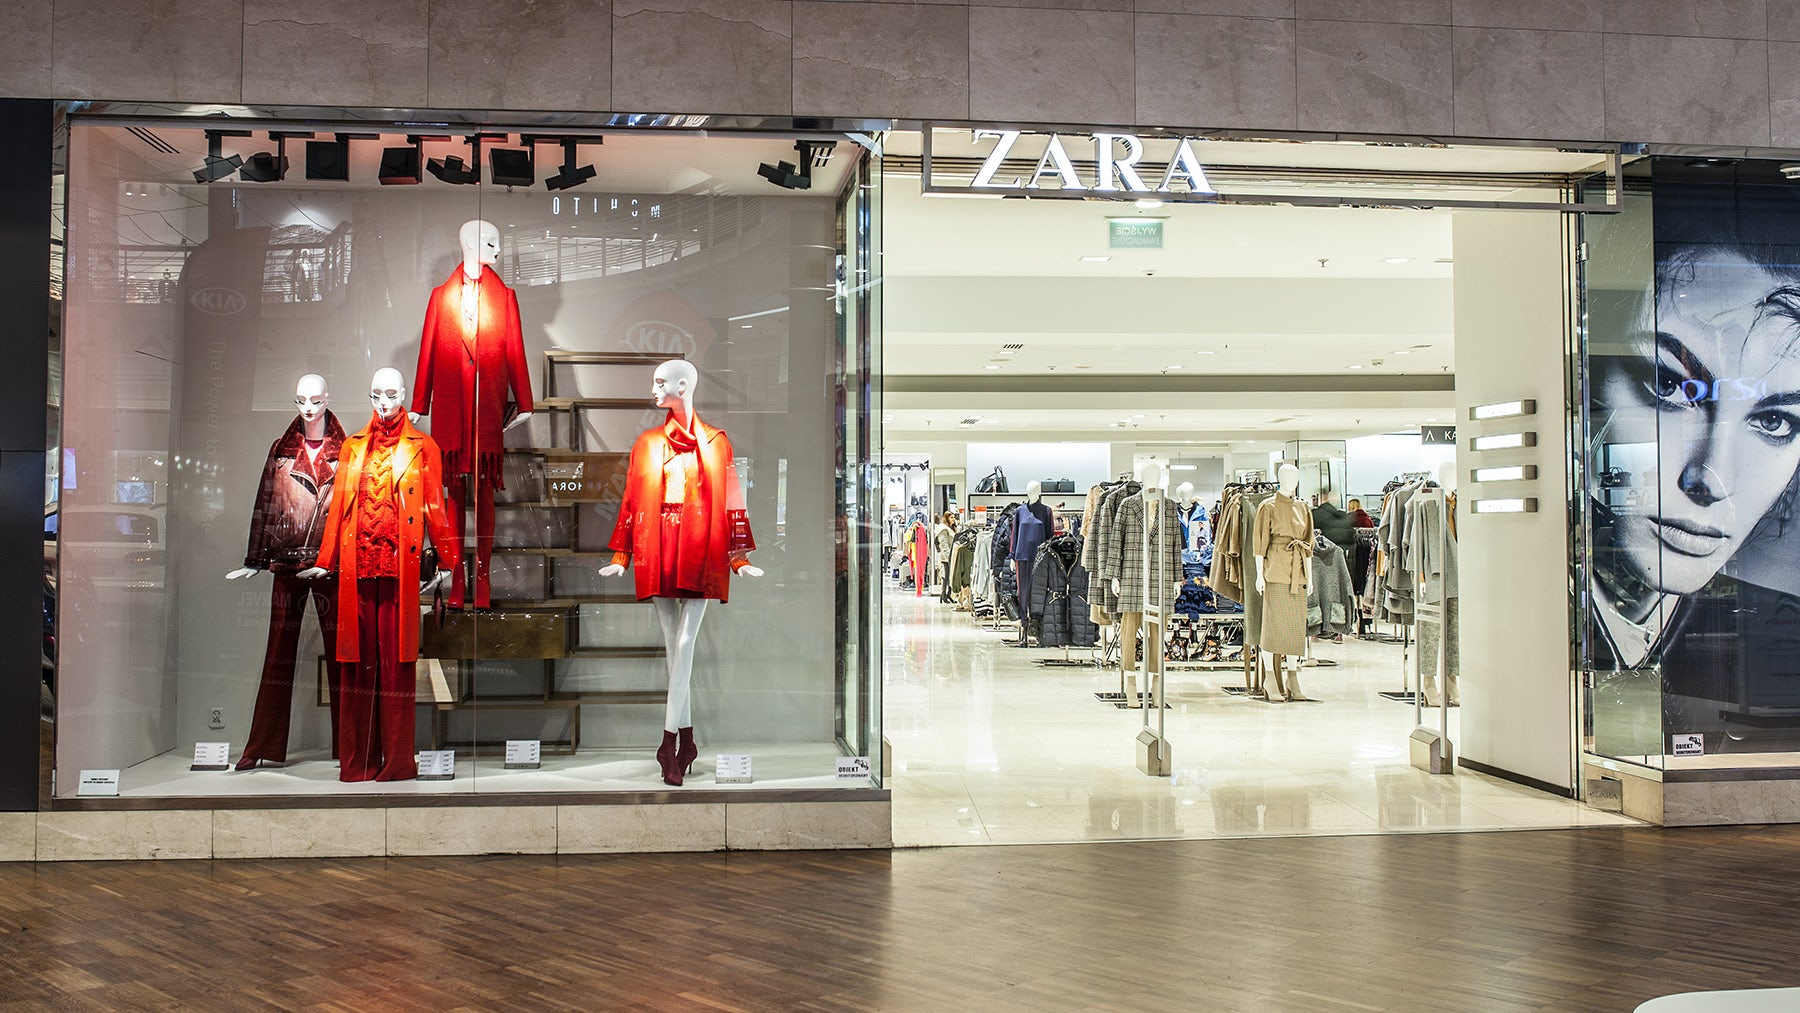 Zara store at the Manufaktura mall in Lodz, Poland | Source: Shutterstock